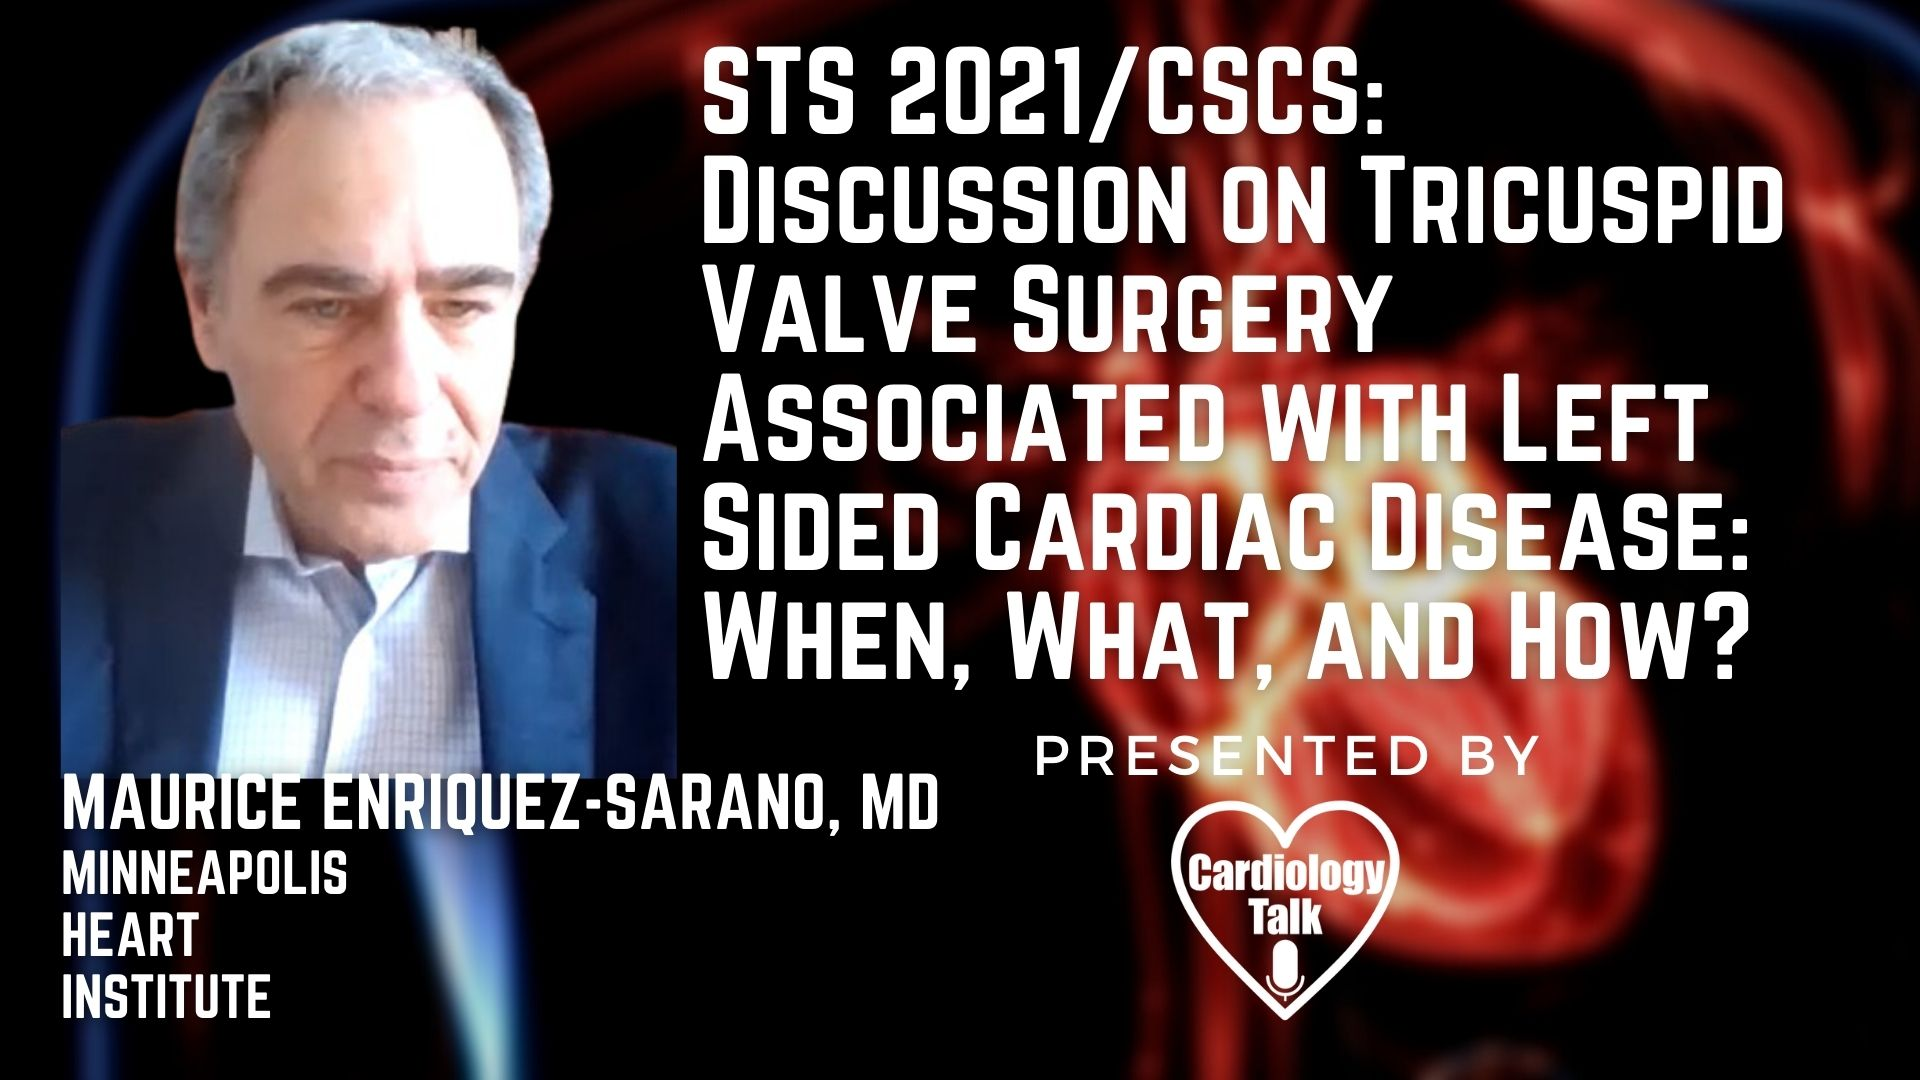 Maurice Sarano, MD @sarano_maurice @MHIF_Heart #STS21 #TricuspidRegurgitation #Cardiology #Research Discussion - STS/CSCS: Tricuspid Valve Surgery Associated with Left Sided Cardiac Disea...